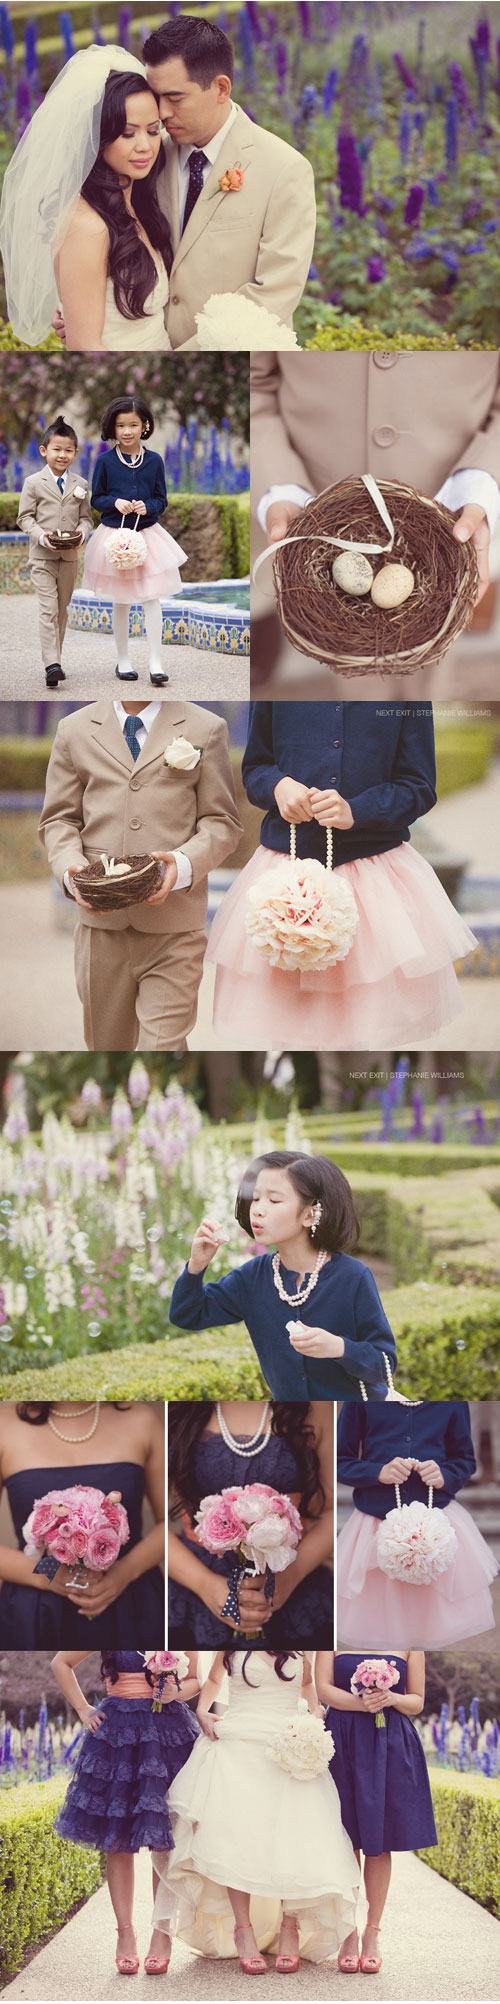 Wedding Blog Real Wedding: Navy & Pink